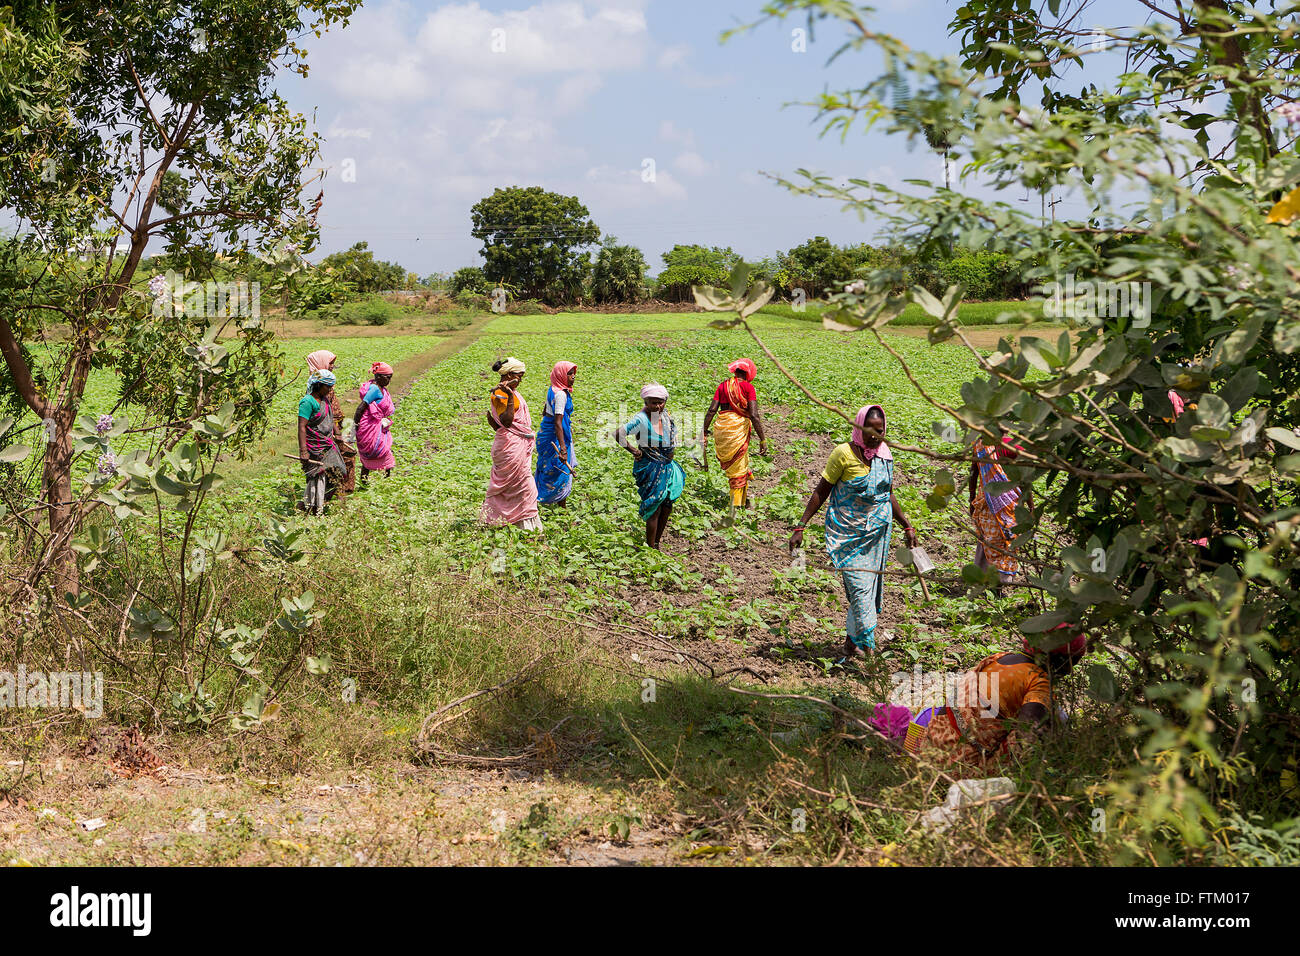 A group of Indian women working in the fields along the Chennai Road, Tindivanam, Viluppuram, Tamil Nadu, India, - Stock Image